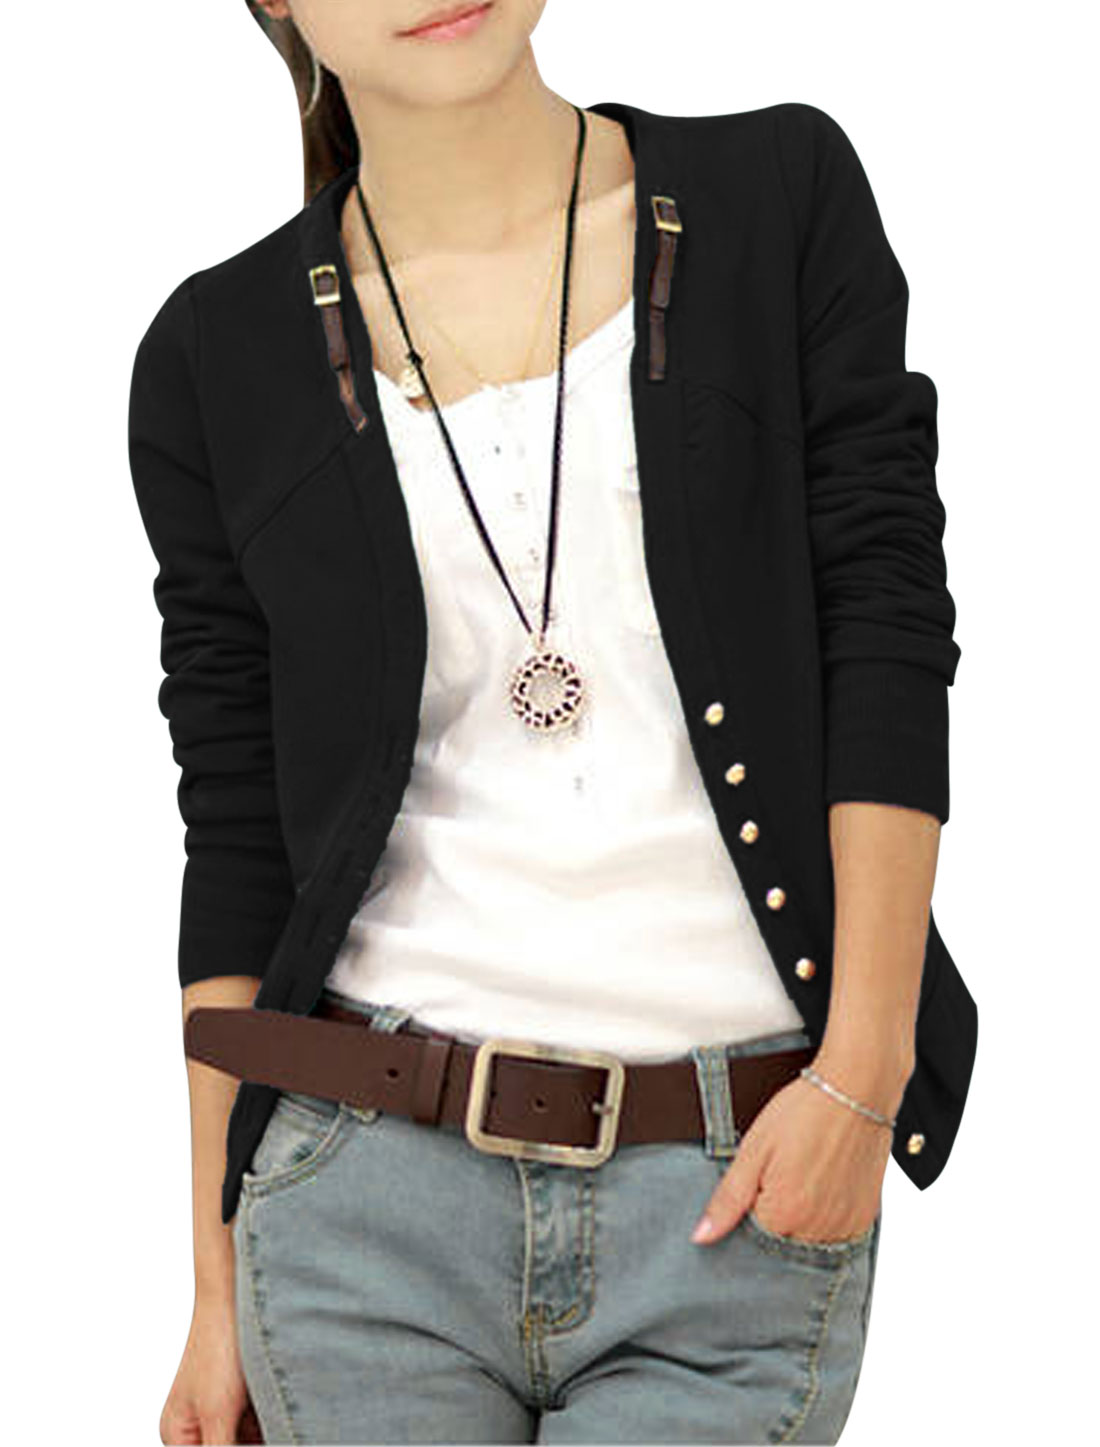 Lady Metal Buckle Tab Detail Single Breasted Casual Jacket Black S